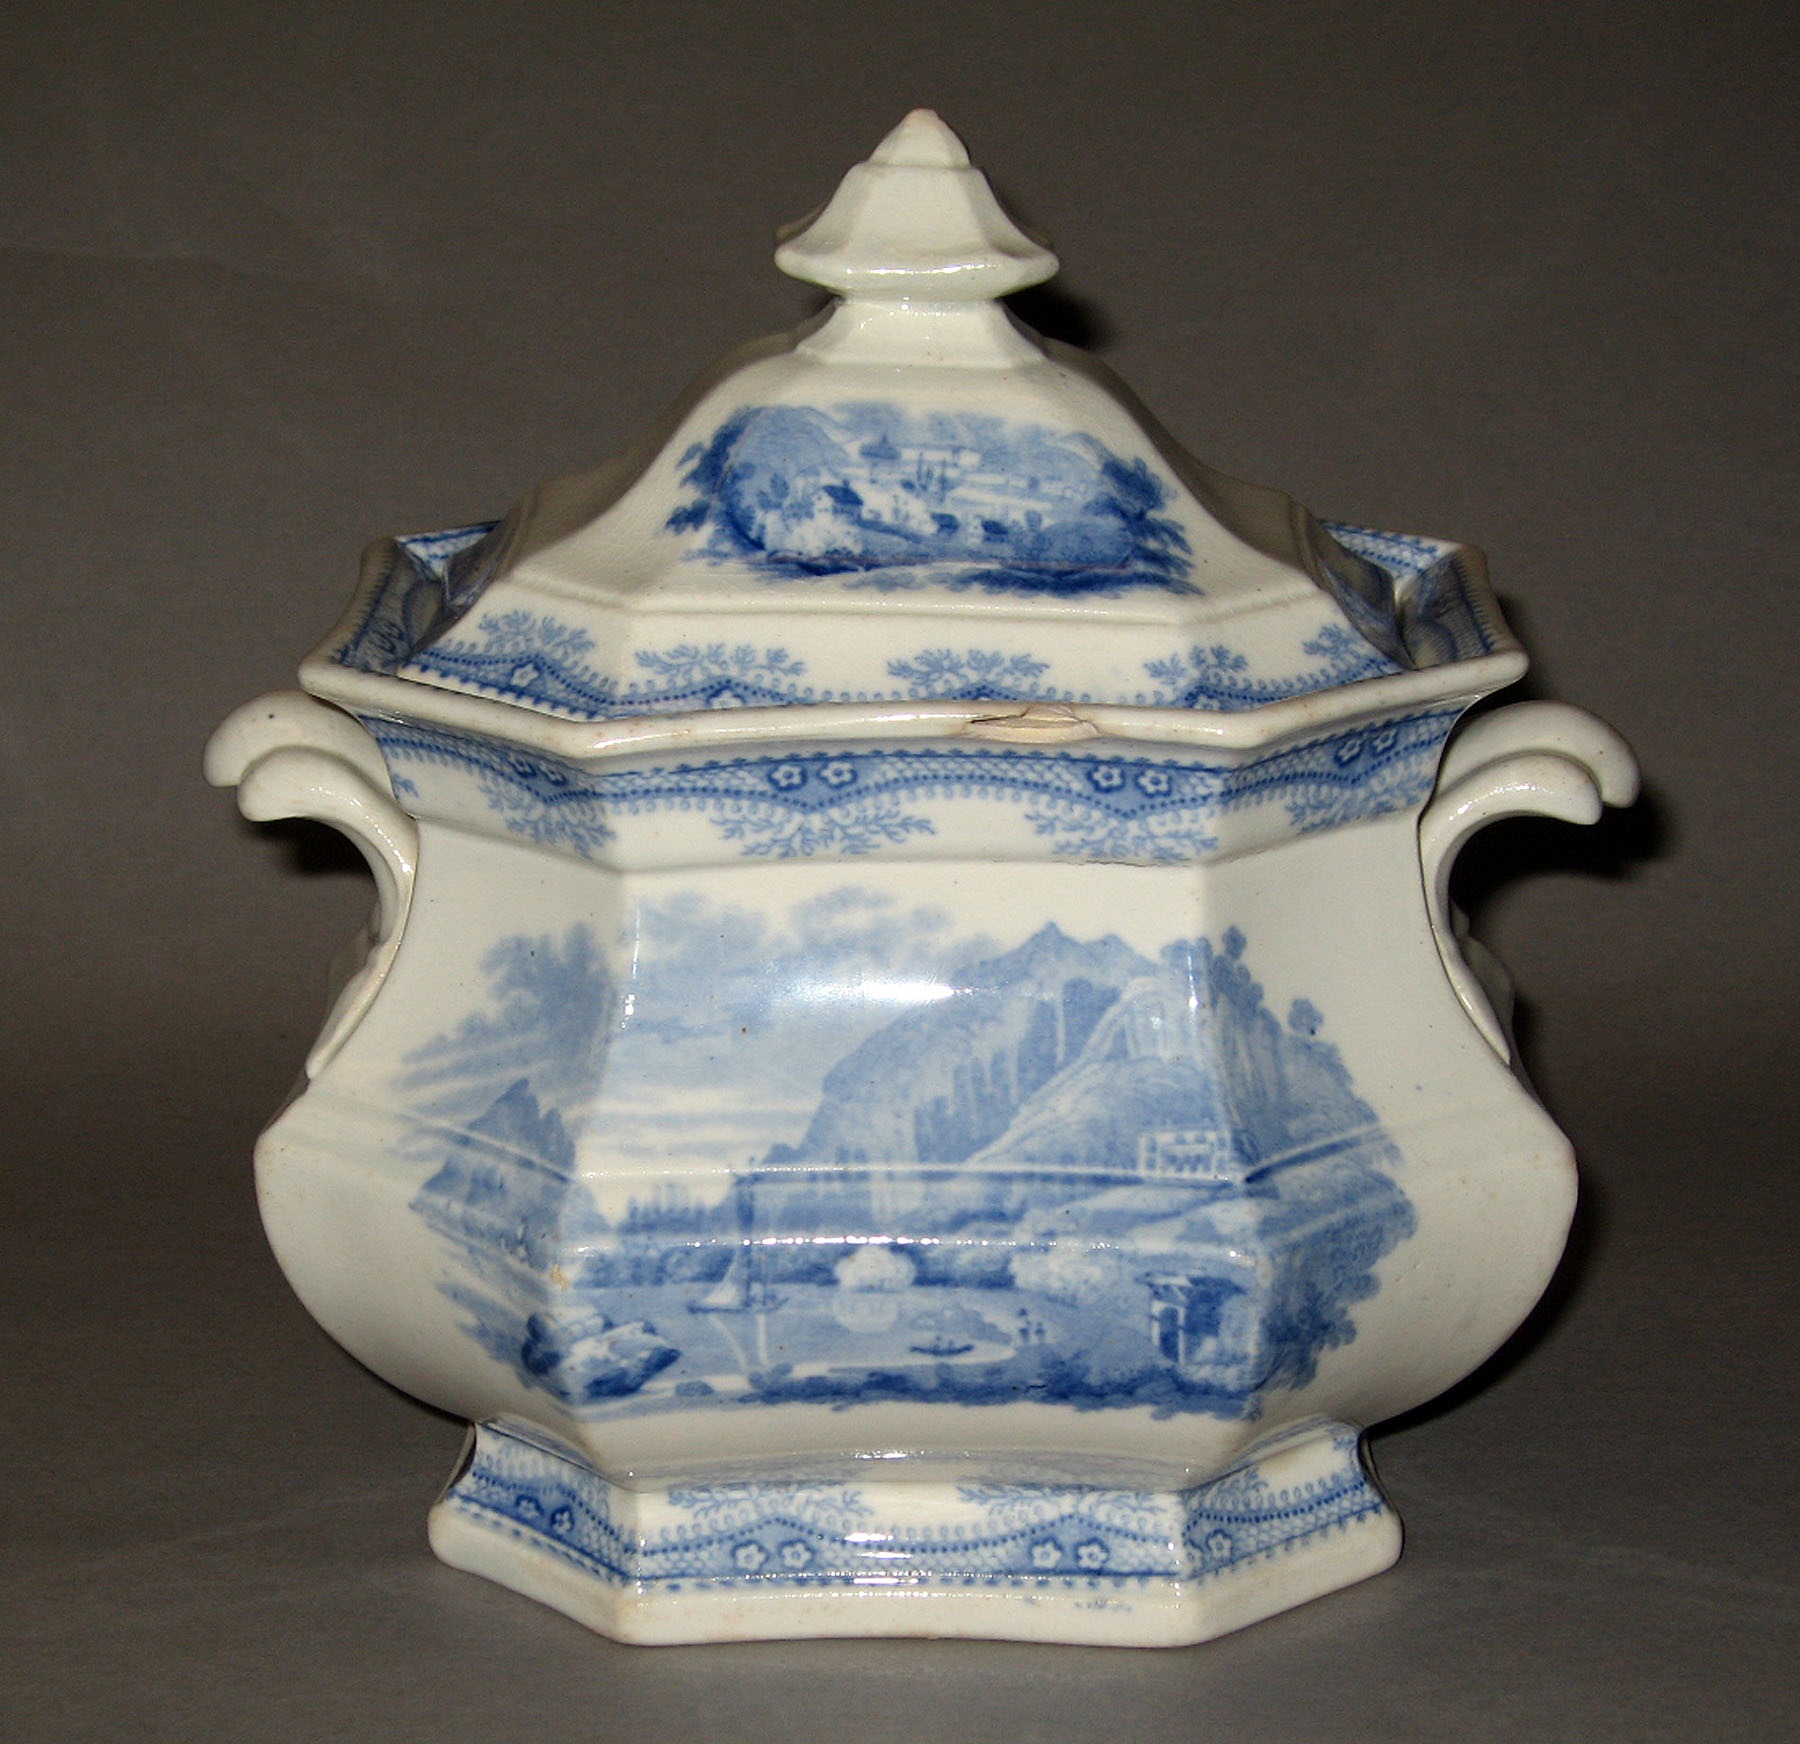 1965.2915.018 Ridgway earthenware sugar bowl